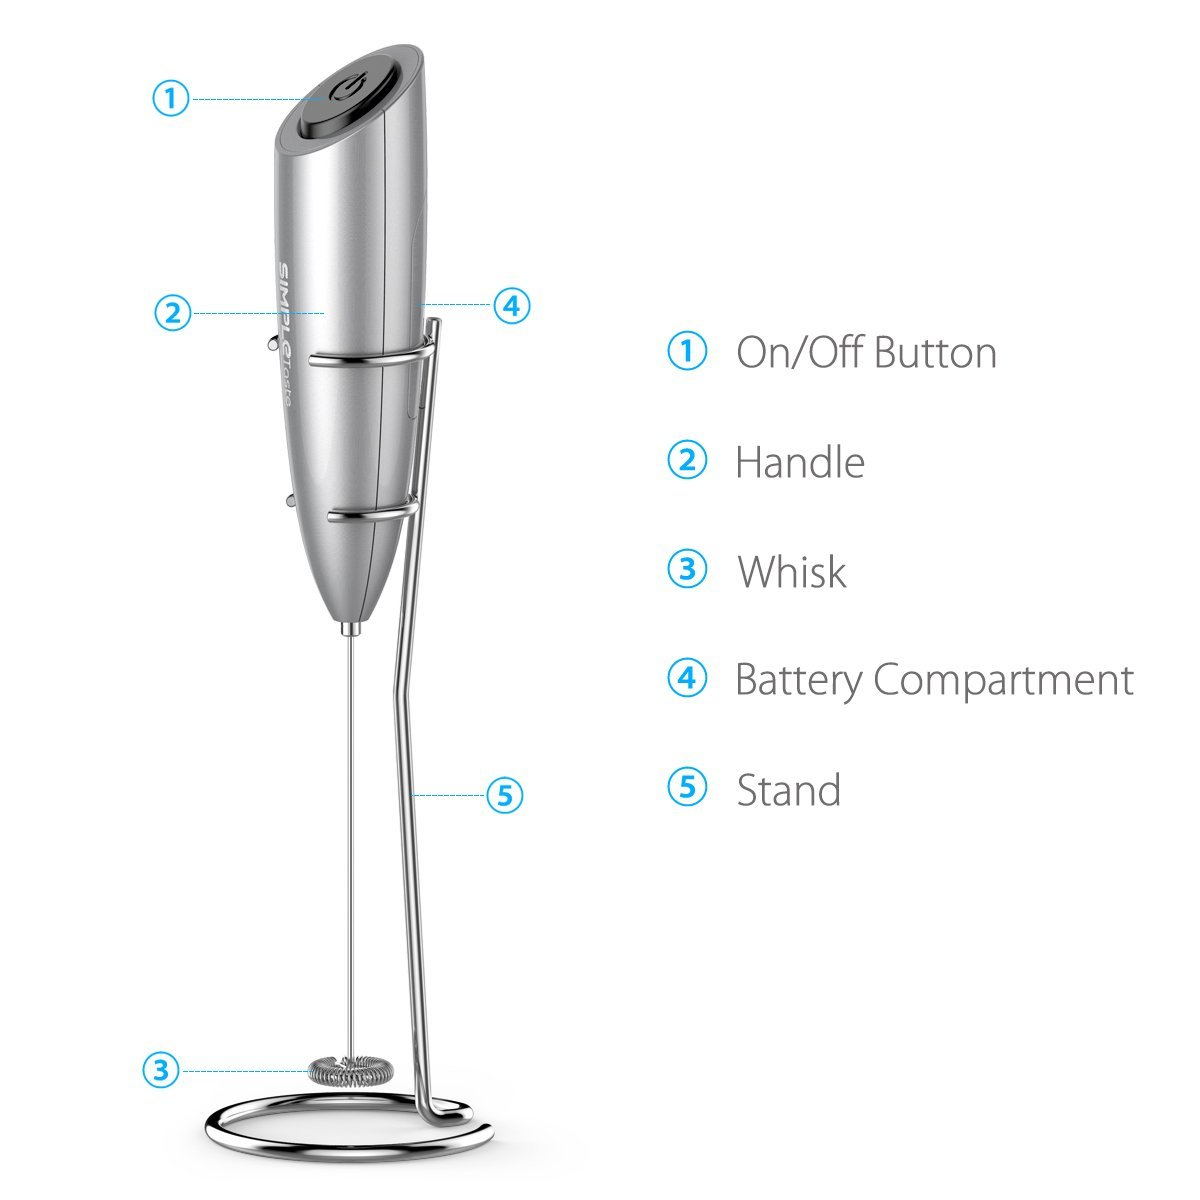 Handheld Battery Powered Electric Milk Frother With Stand